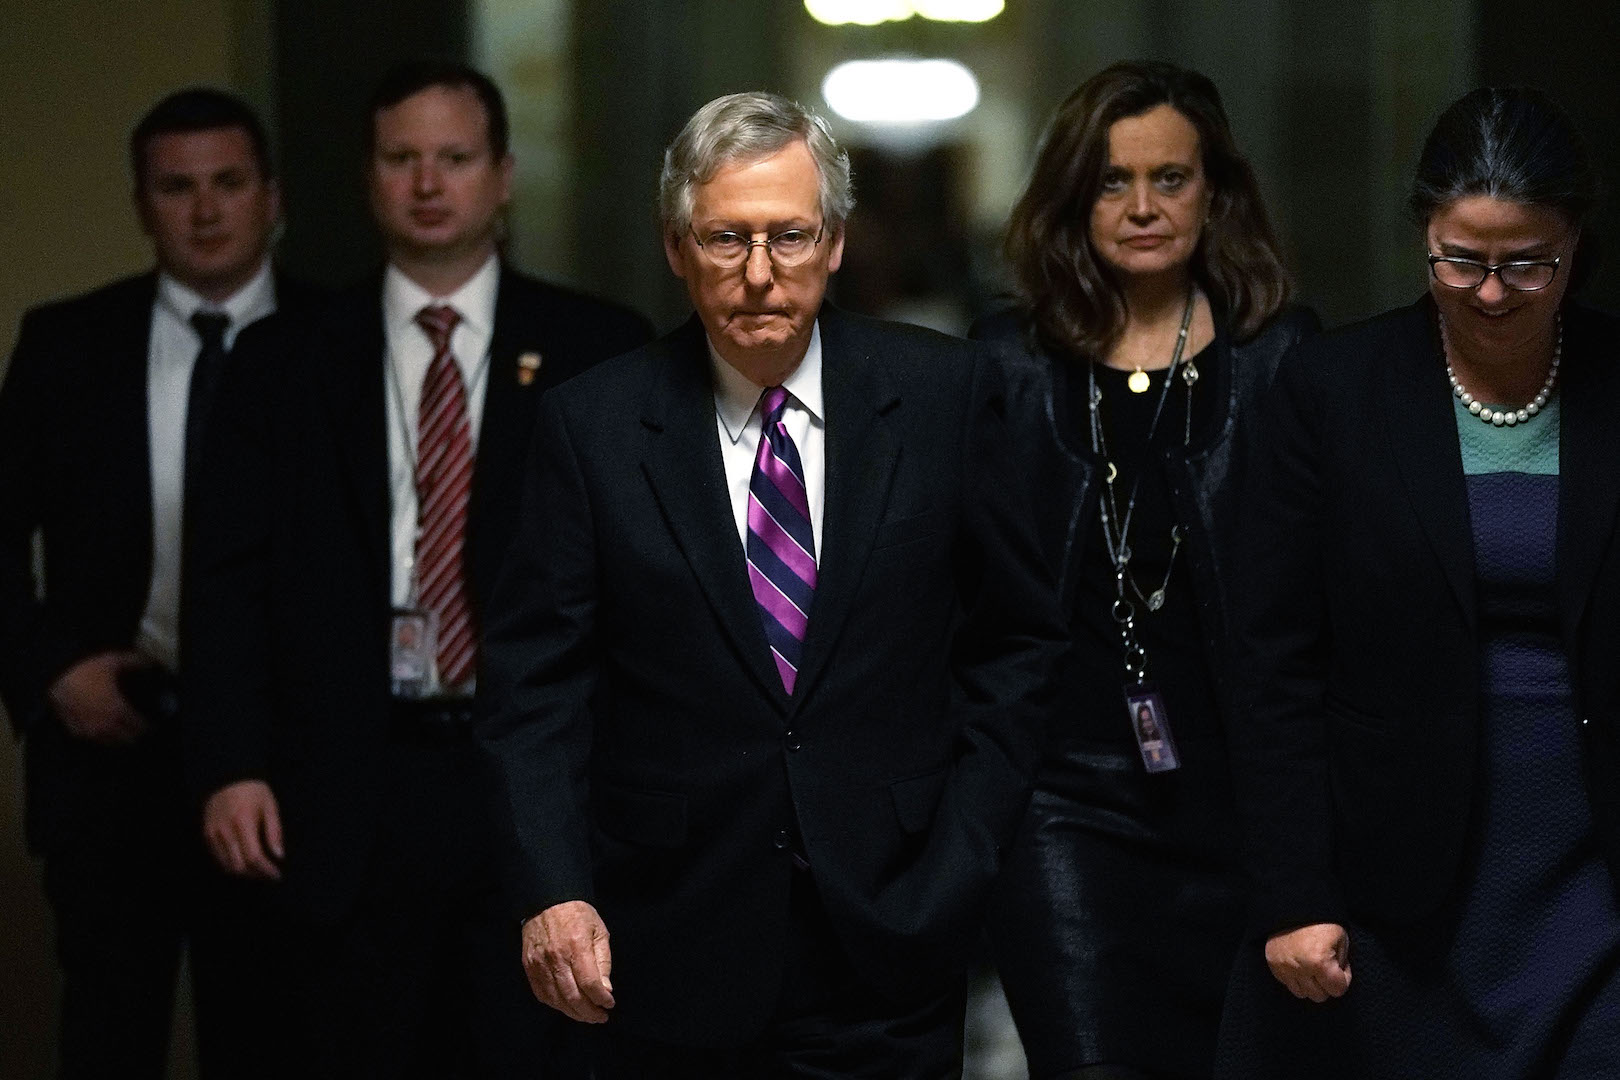 In this file photo, U.S. Senate Majority Leader Sen. Mitch McConnell, R-Ky., (center) walks toward the Senate chamber with his aides. In the partisan blame game ahead of a possible shutdown, Republicans and Democrats accused each other of hurting the military. (Alex Wong/Getty Images)